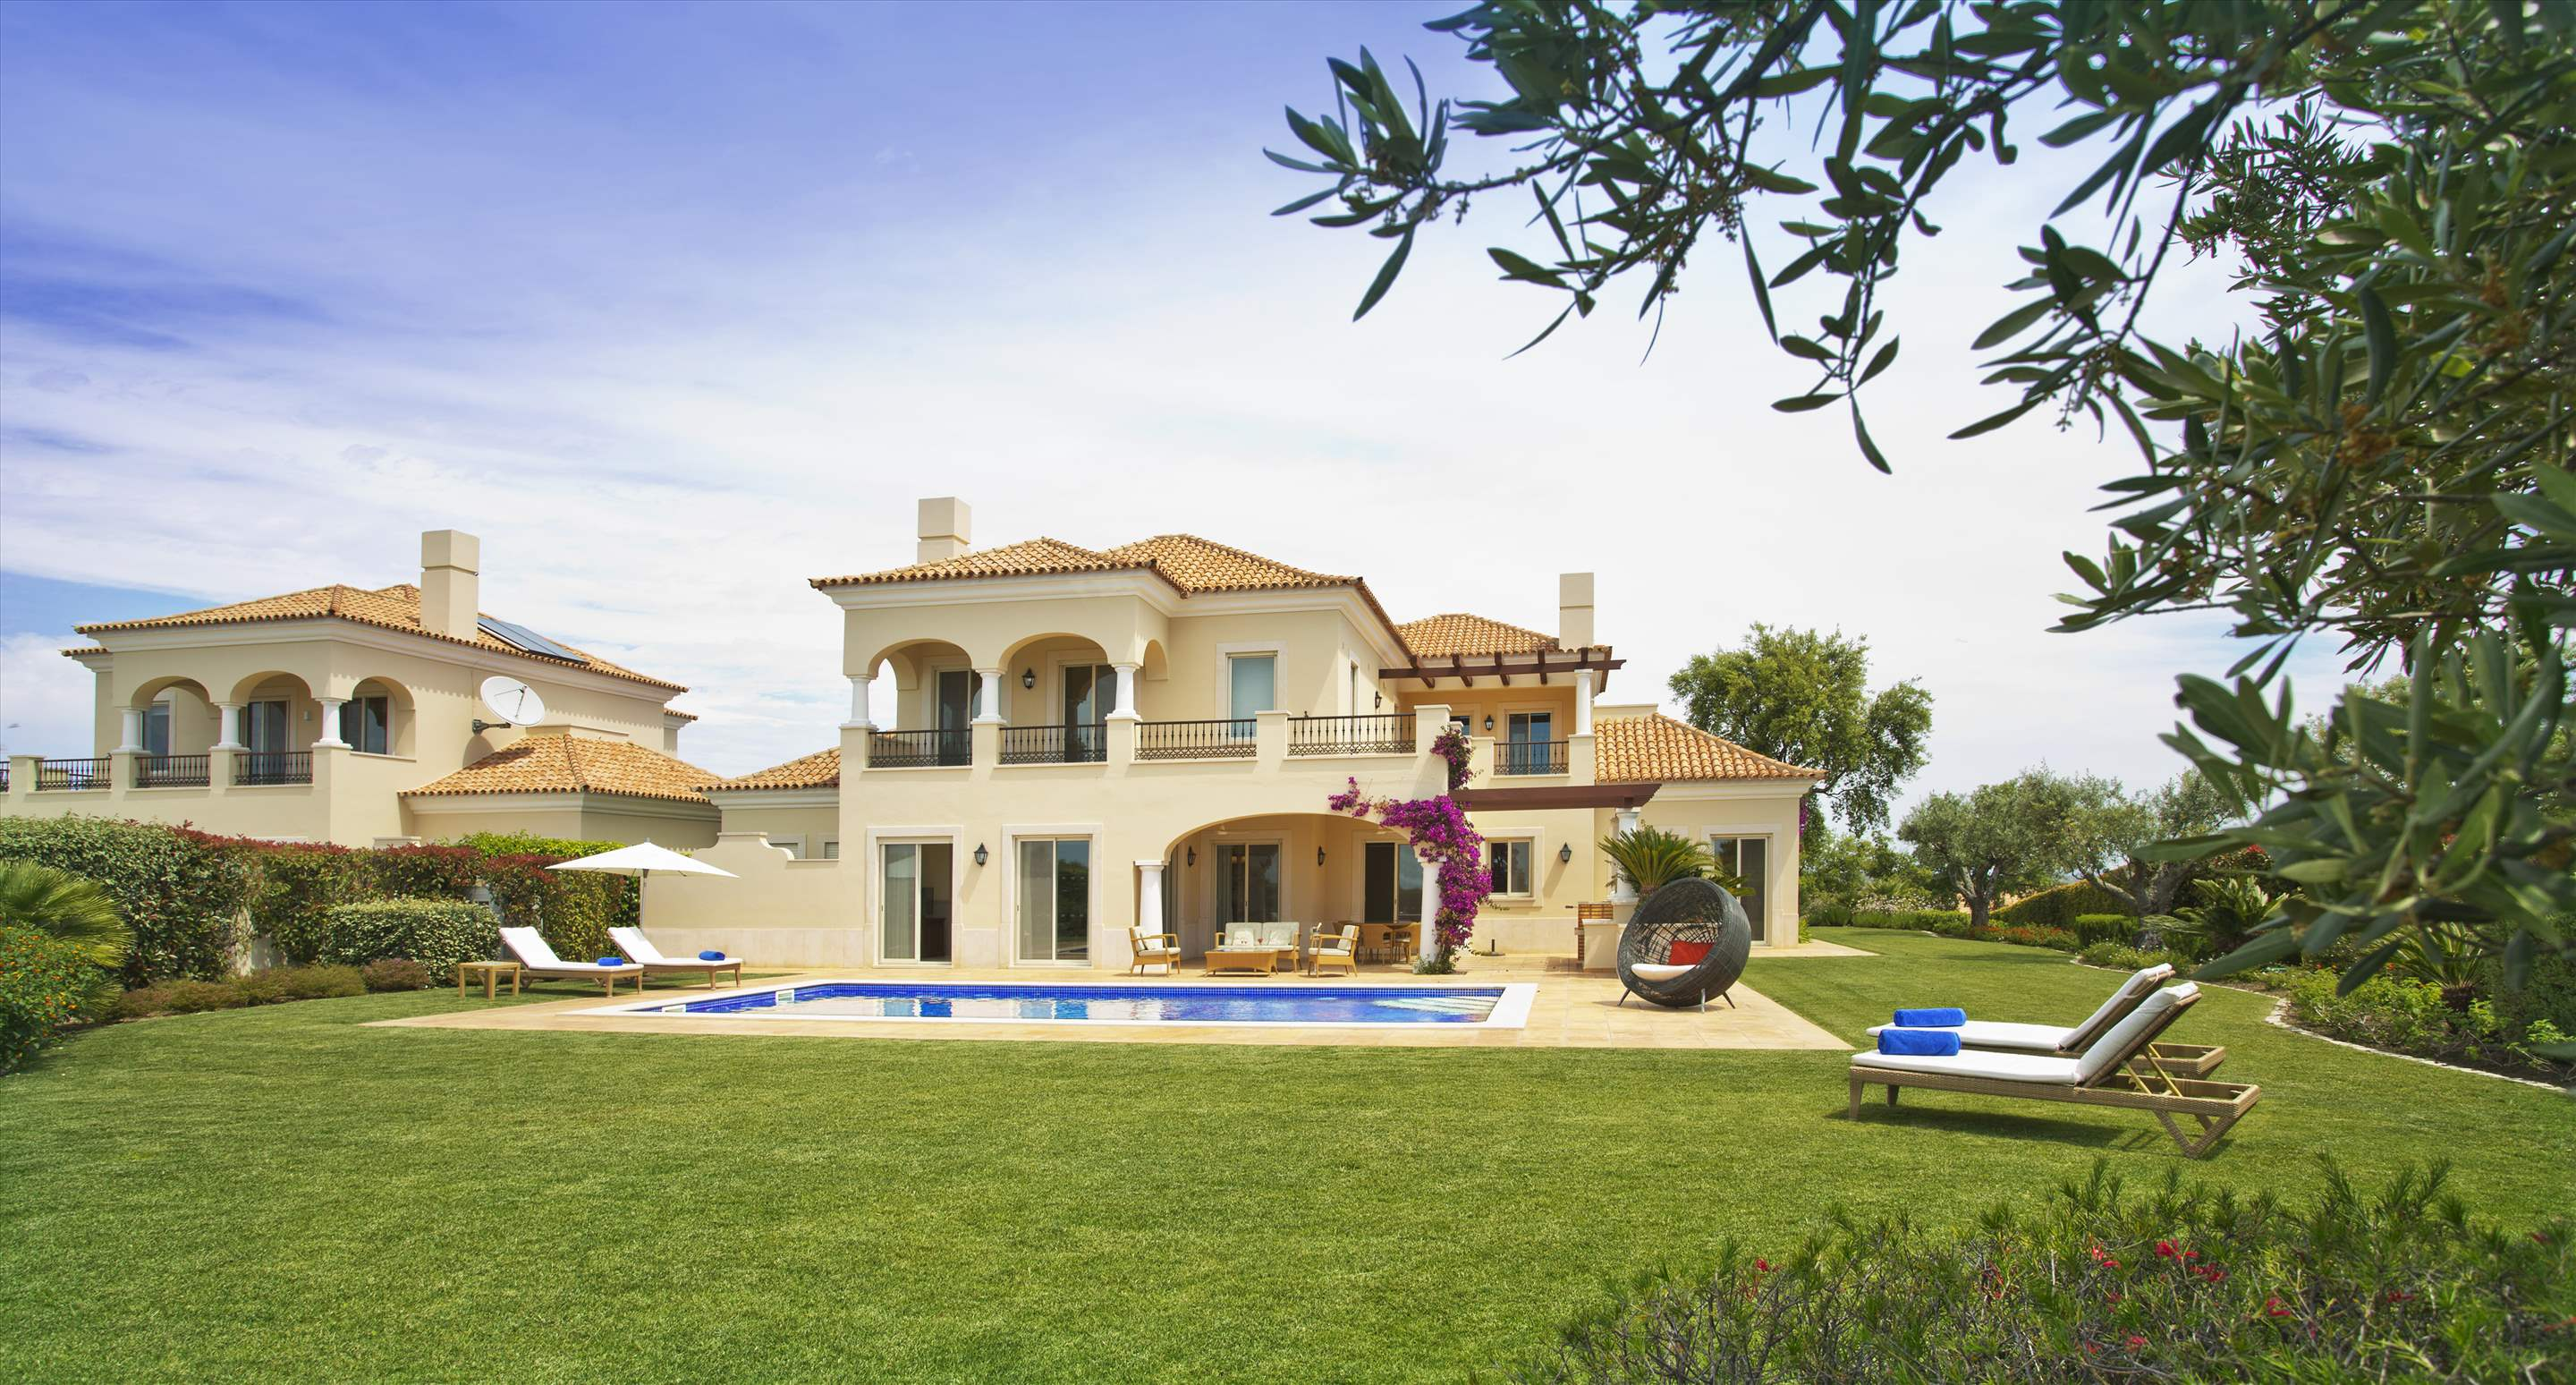 Monte Rei Three Bedroom Villa with Private Pool, 3 bedroom villa in Monte Rei Country Club, Algarve